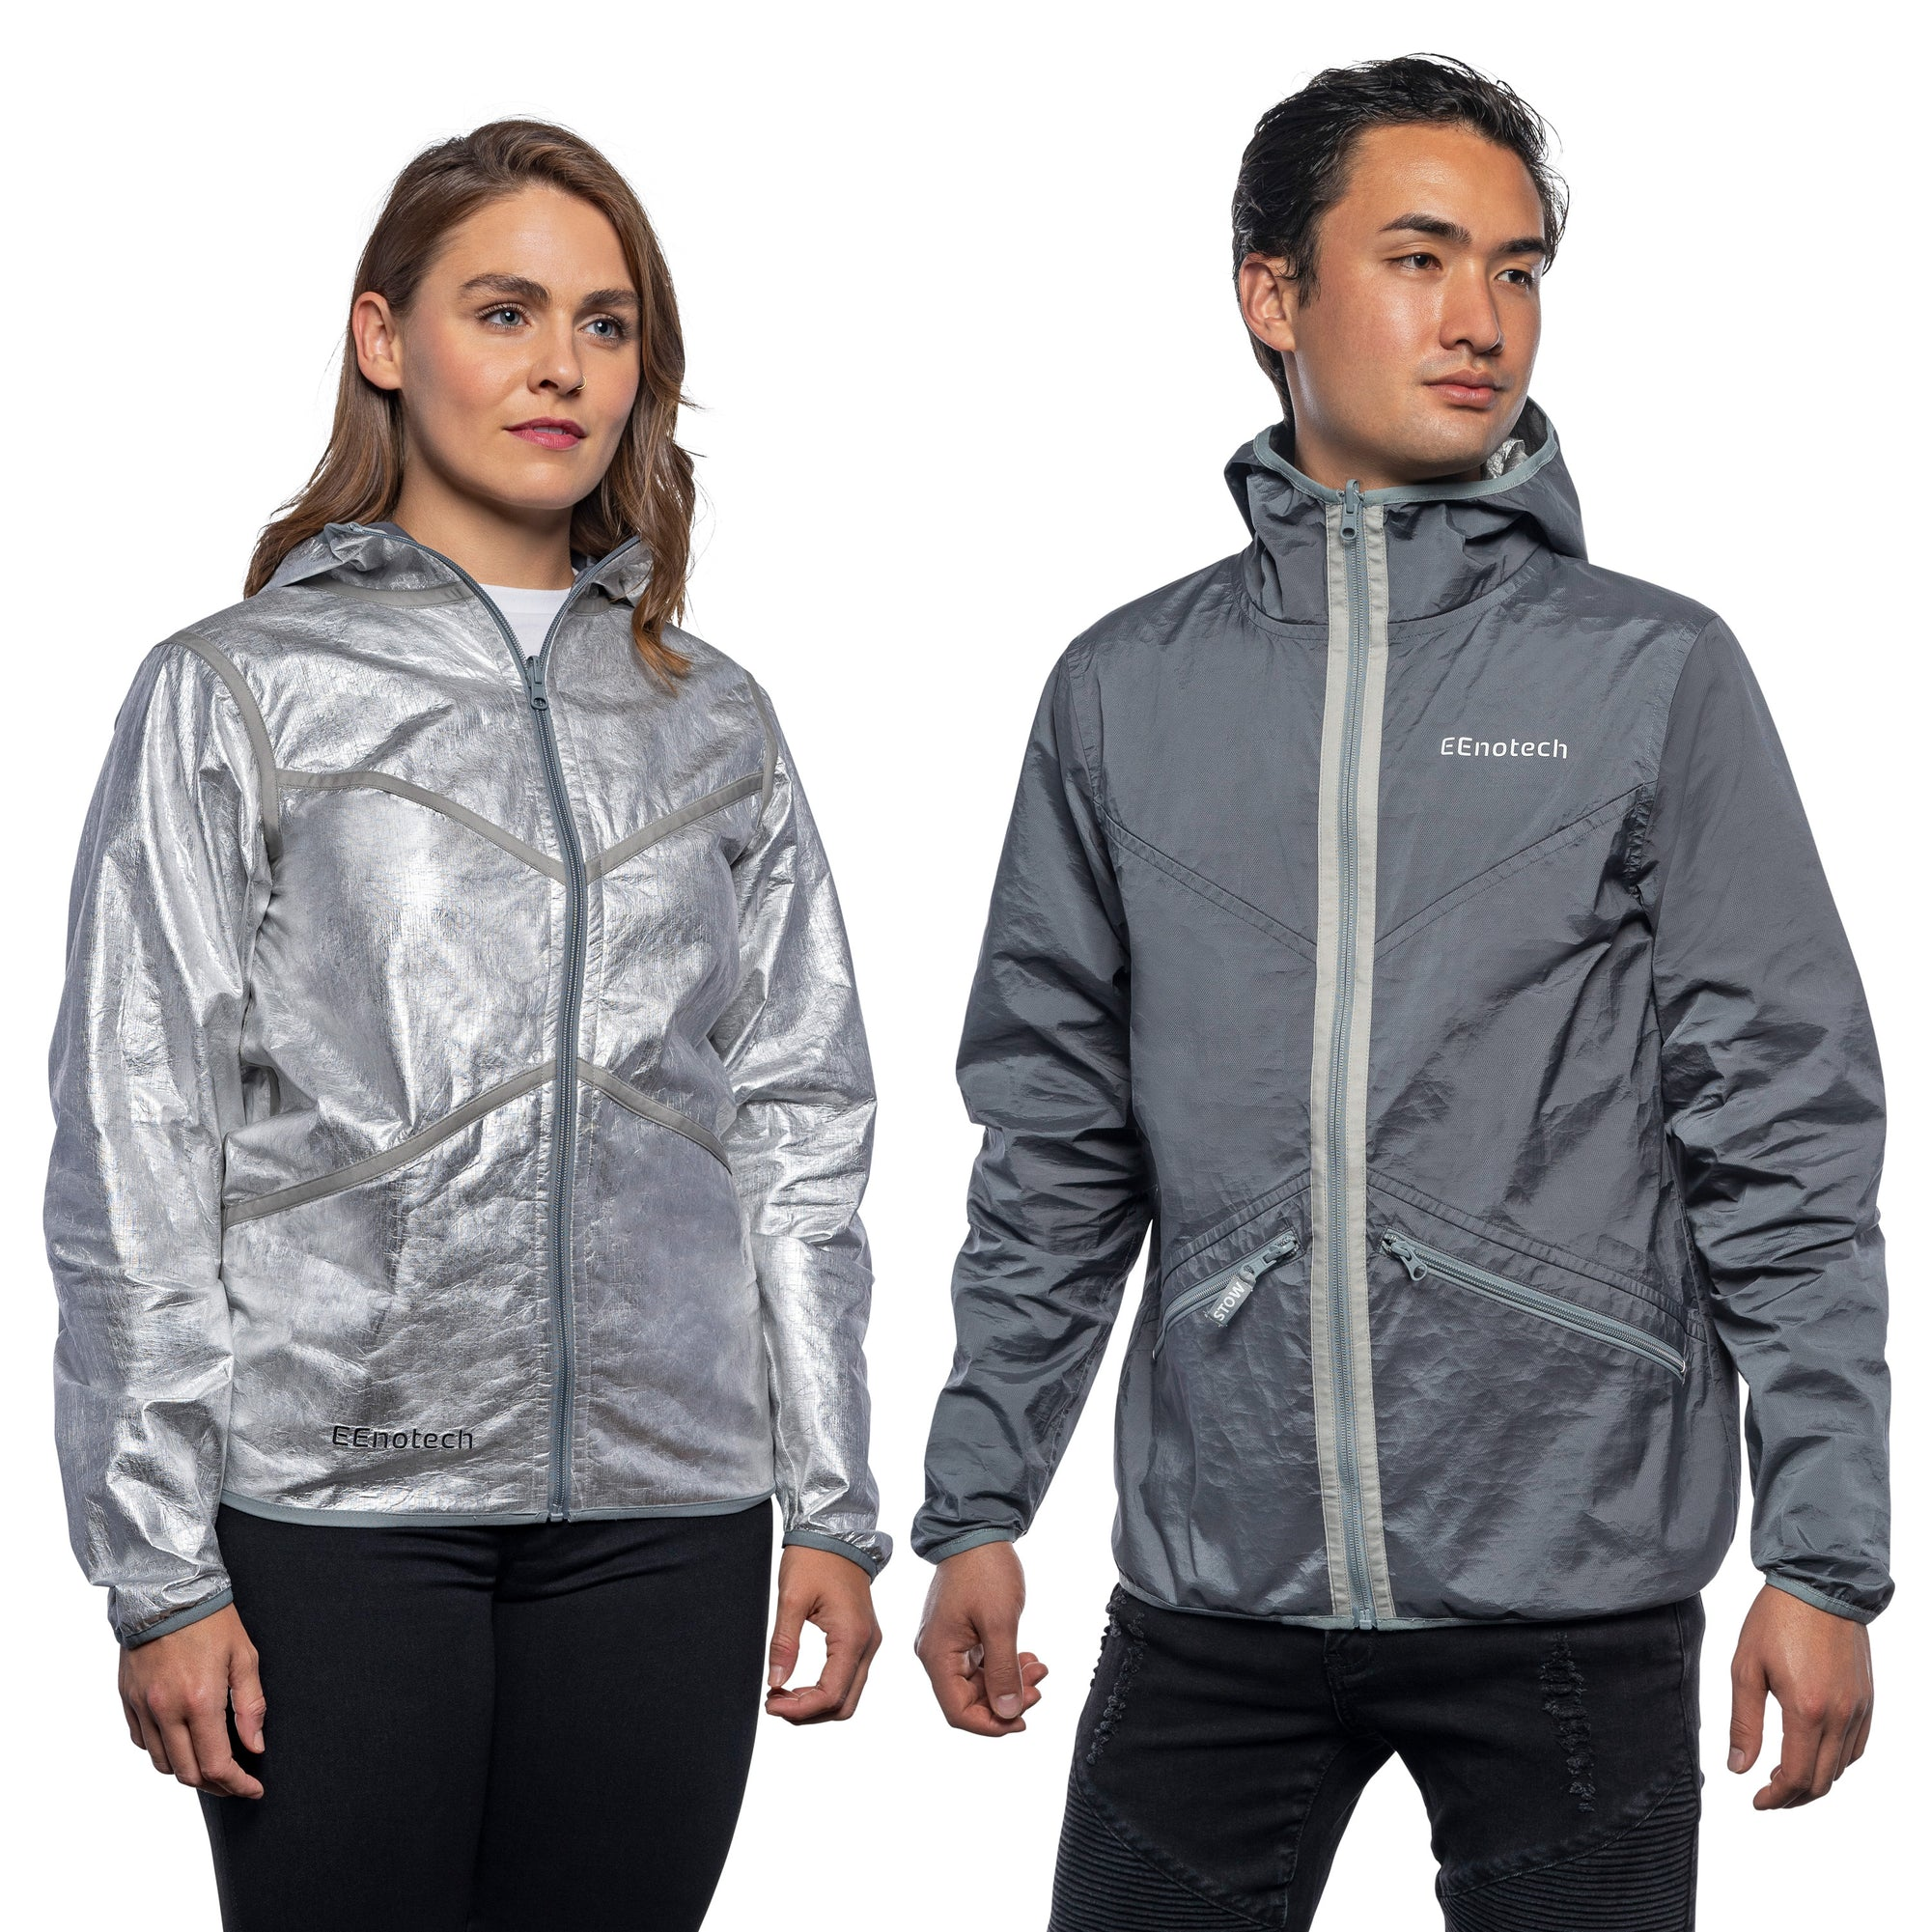 50°F (10°C) Super Thin Unisex Reversible Jacket